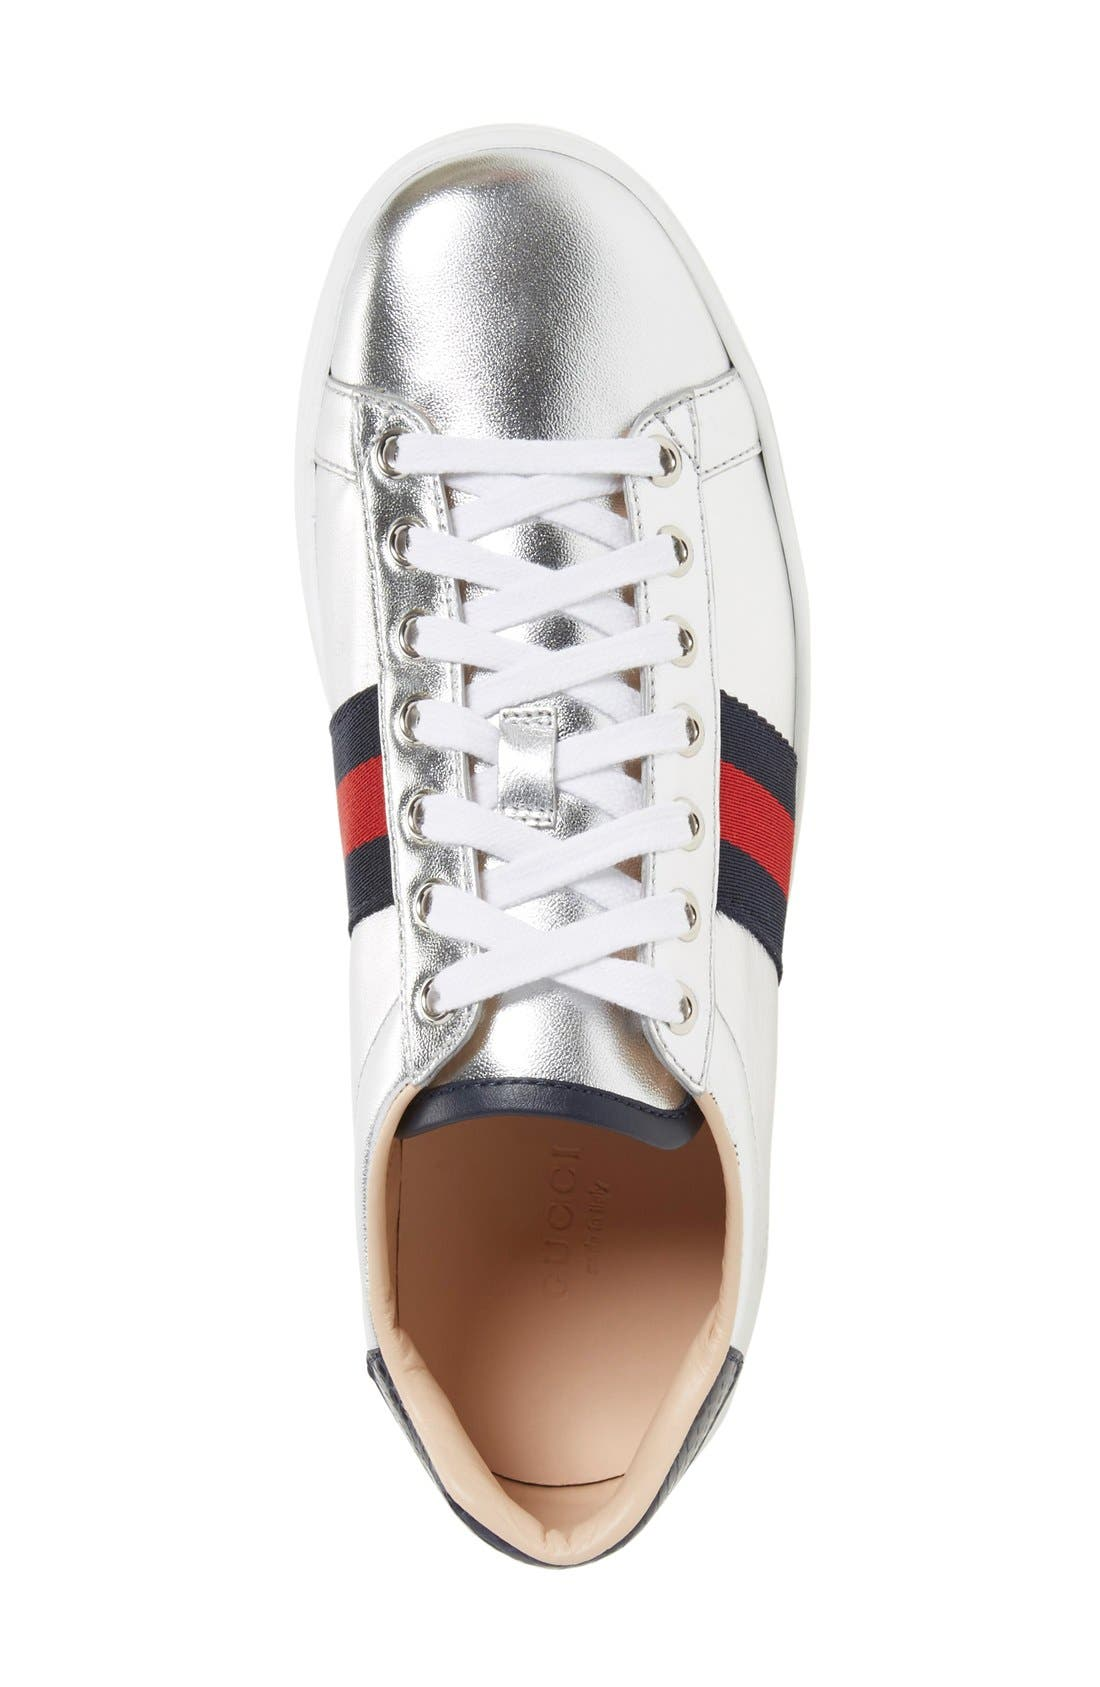 GUCCI,                             'New Ace' Metallic Low Top Sneaker,                             Alternate thumbnail 2, color,                             040